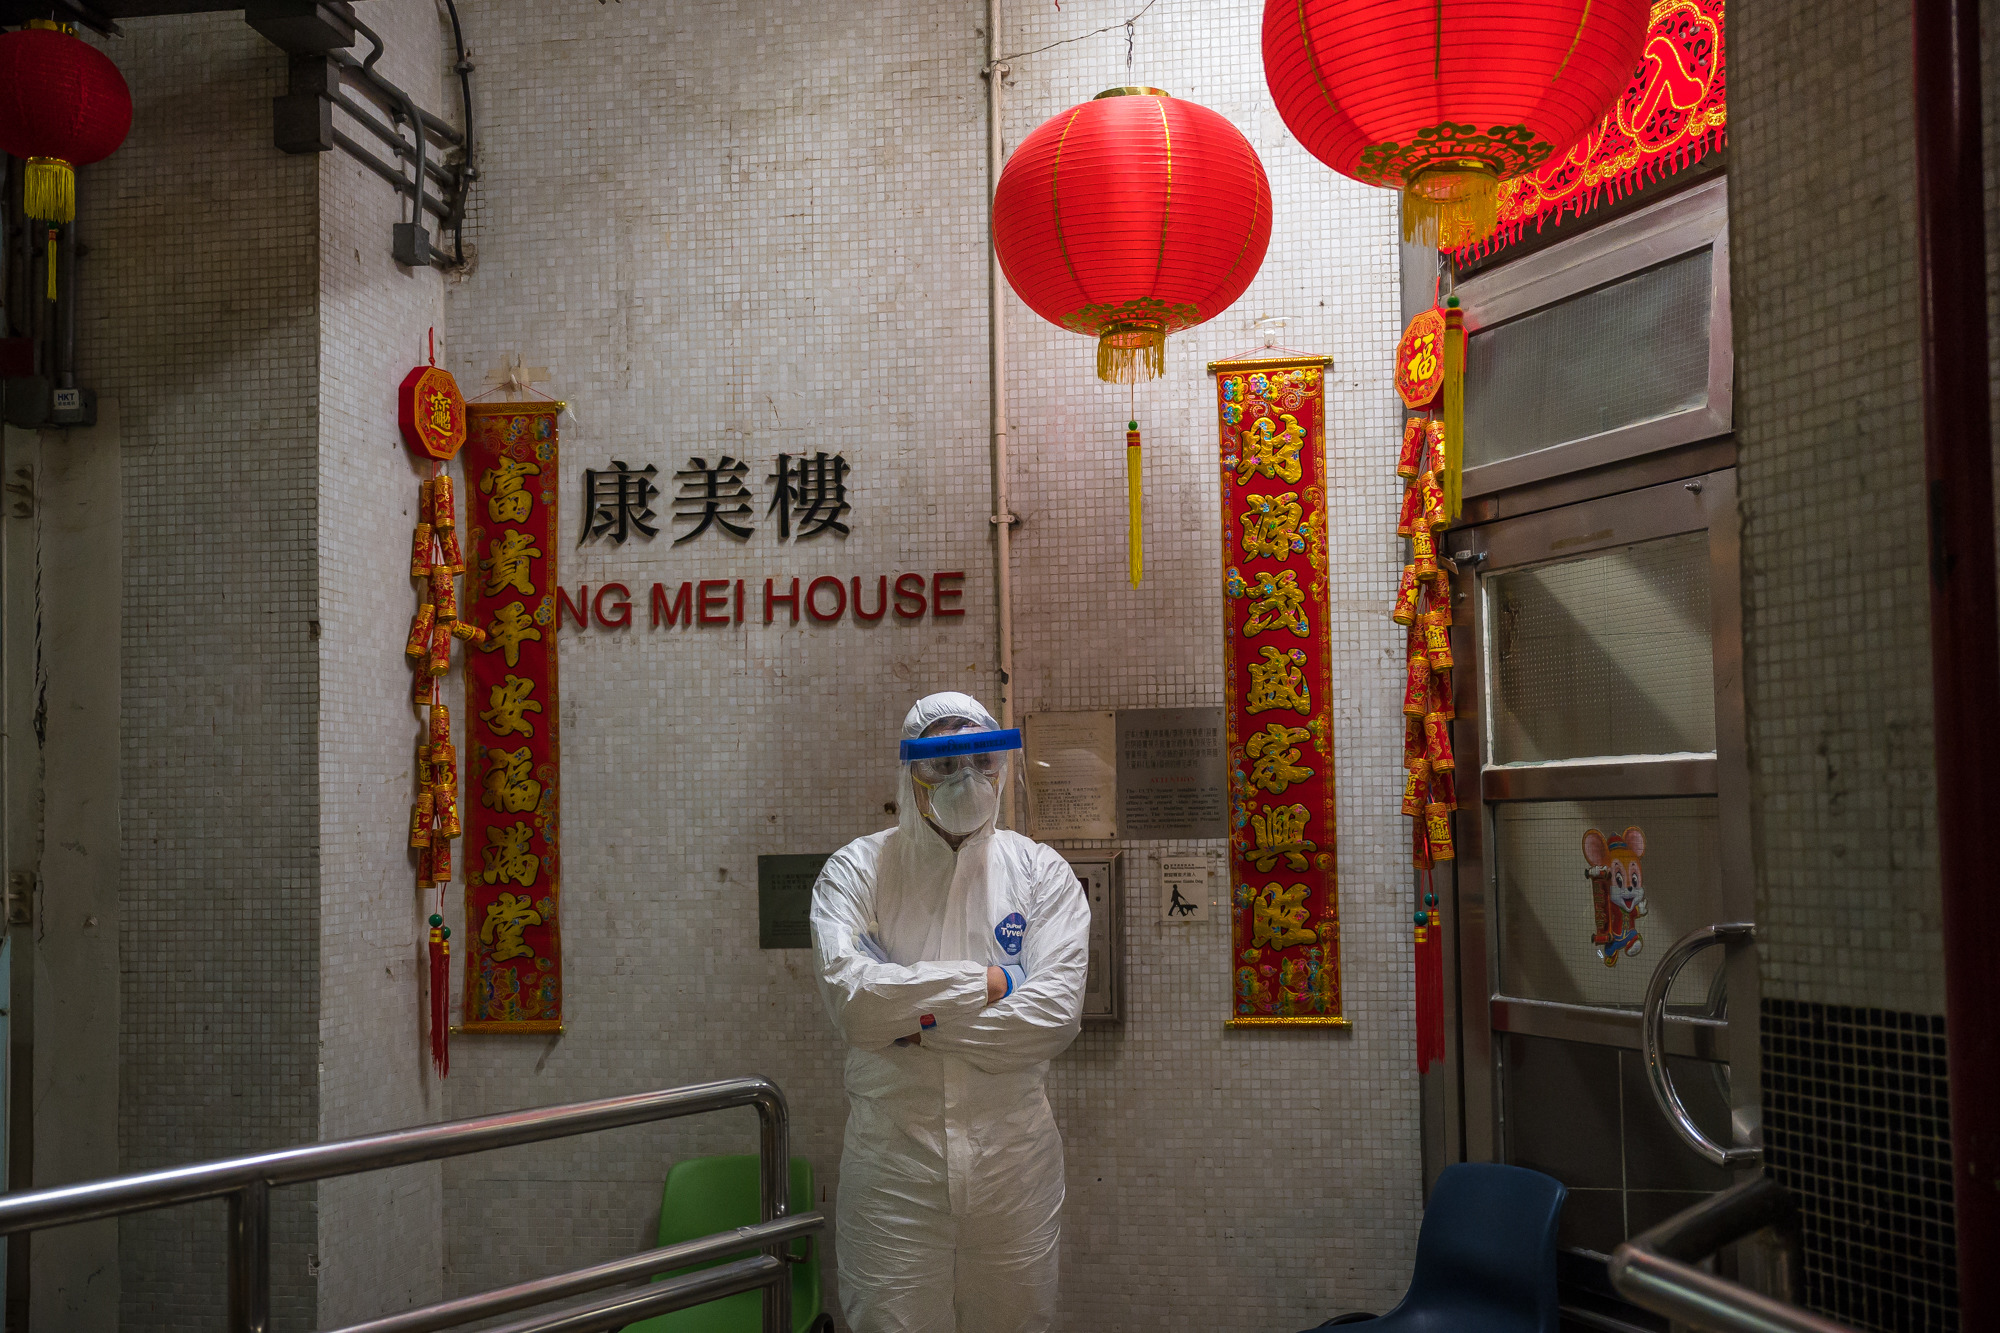 An official wearing protective gear stands guard outside an entrance to the Hong Mei House residential building at Cheung Hong Estate in Hong Kong's Tsing Yi district on Tuesday.